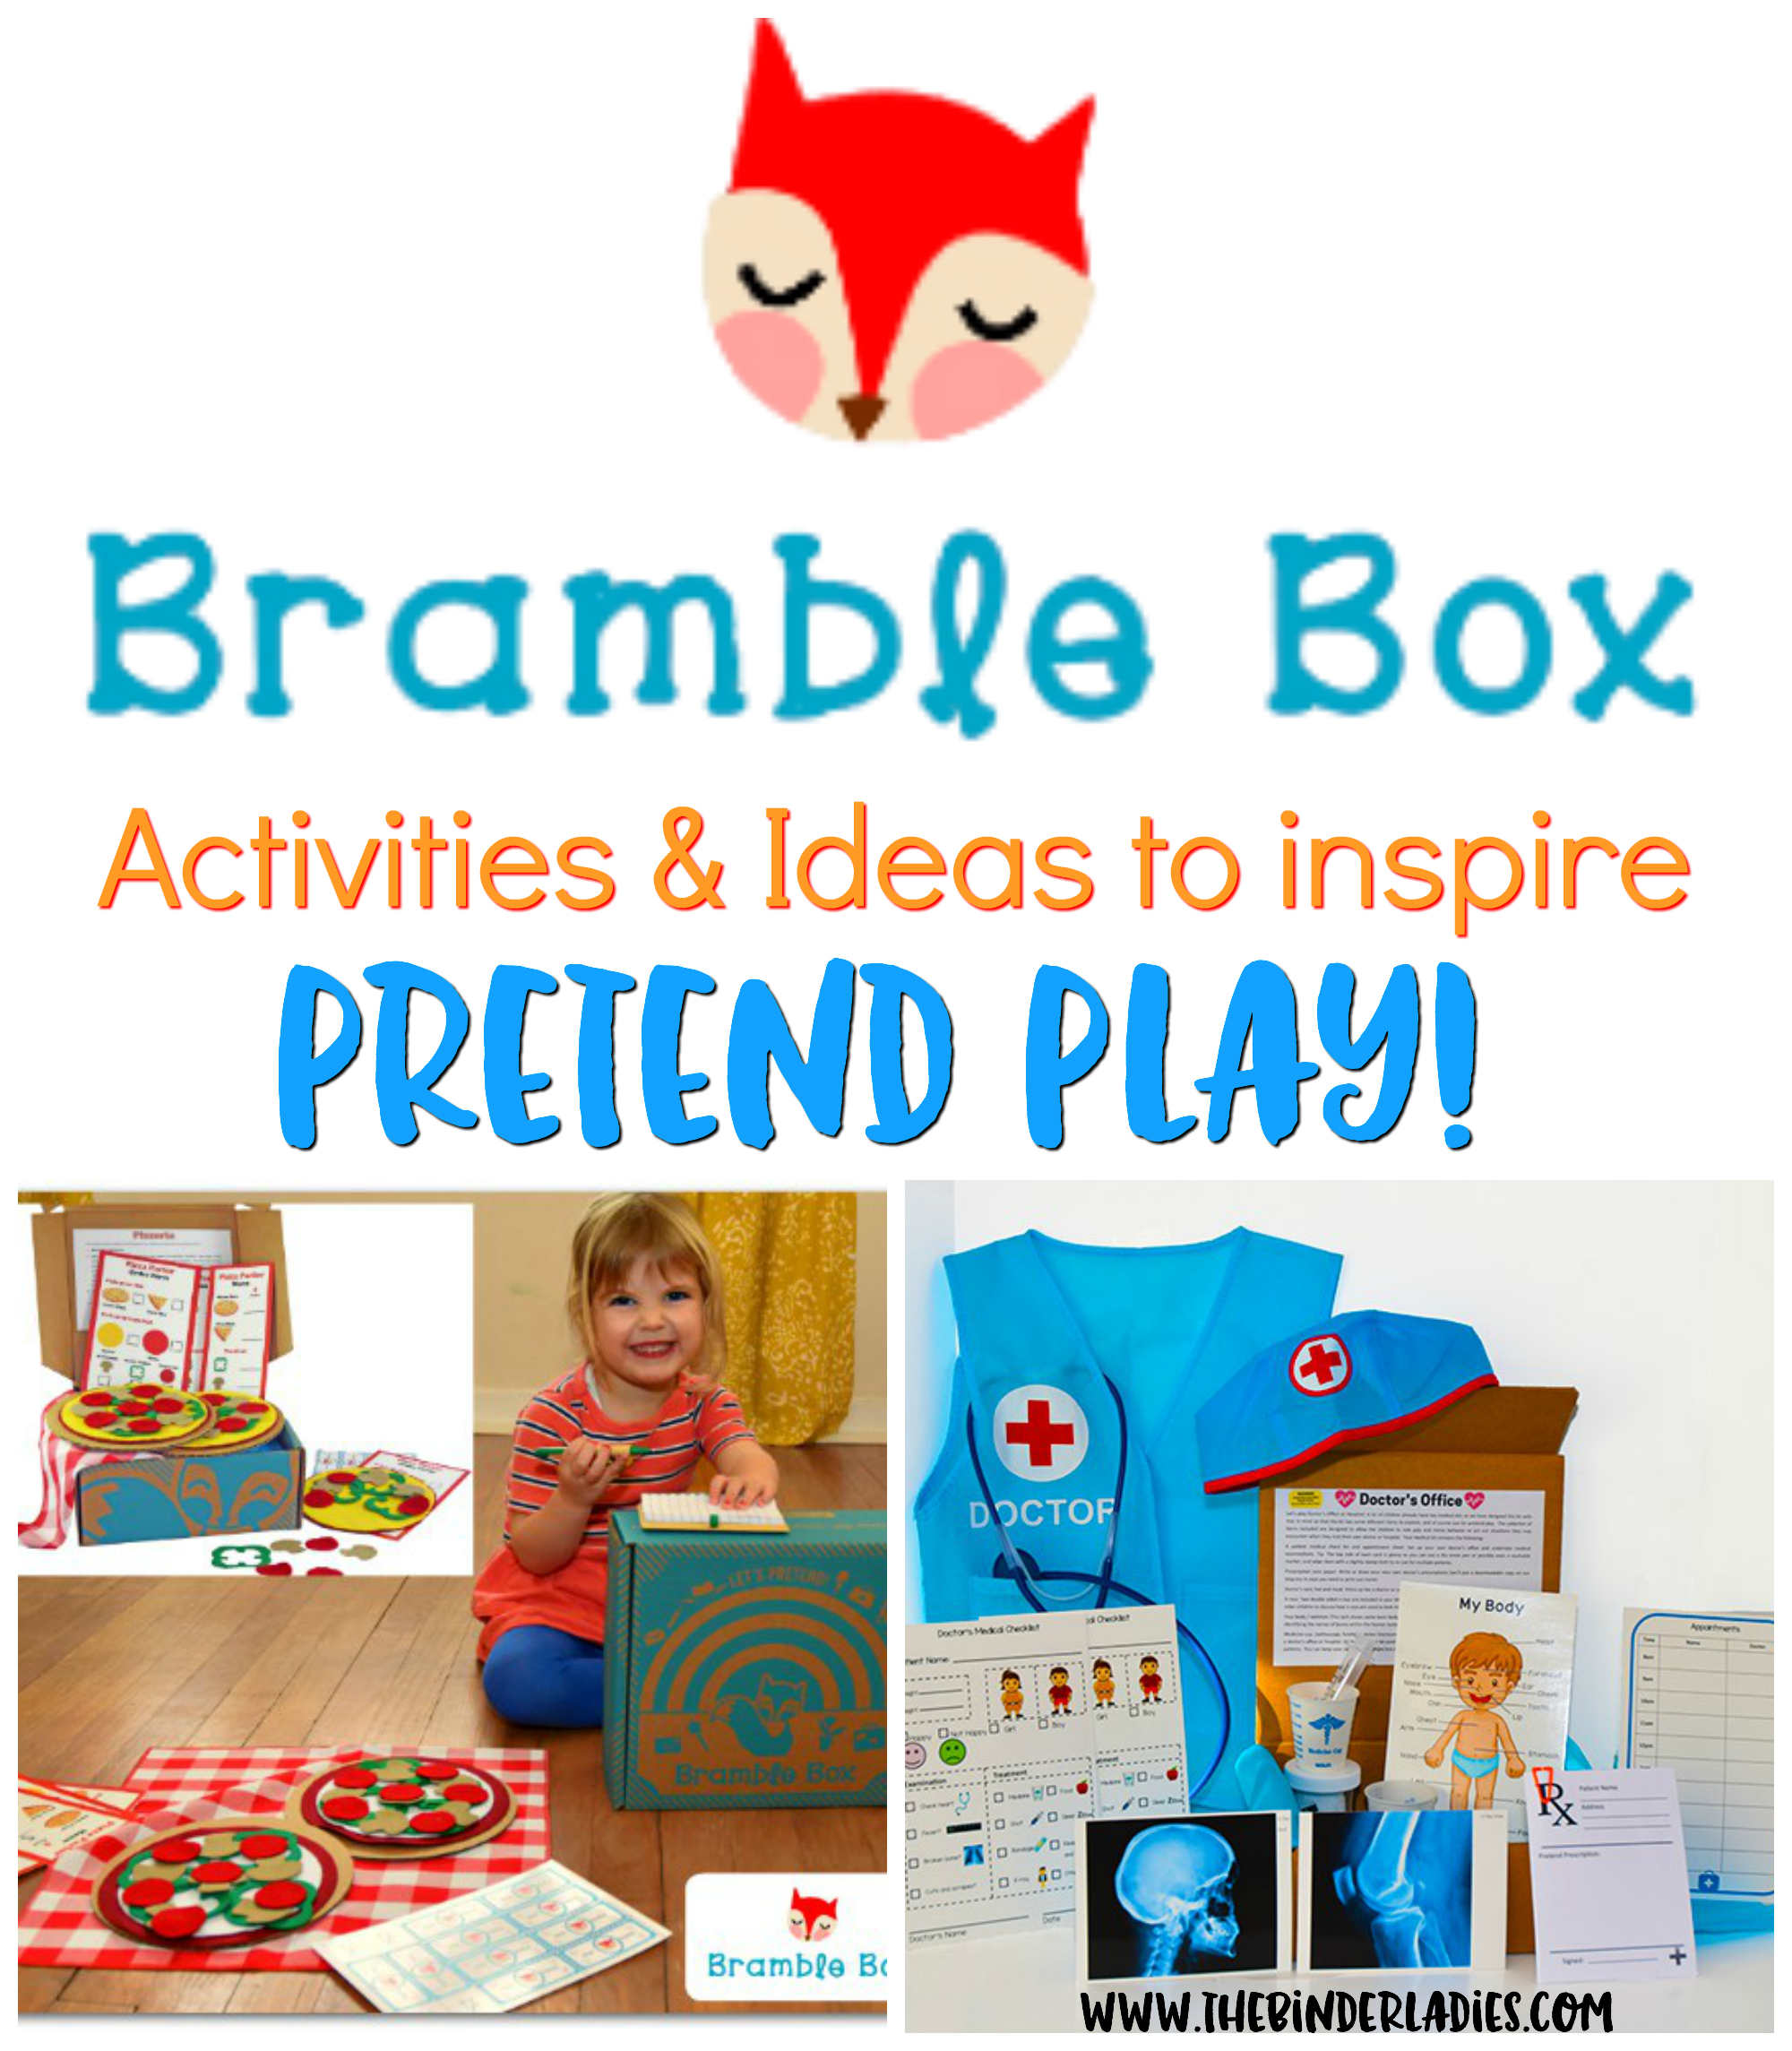 Bramble Box - Kids' Subscription Boxes. Activitives and ideas to inspire pretend play